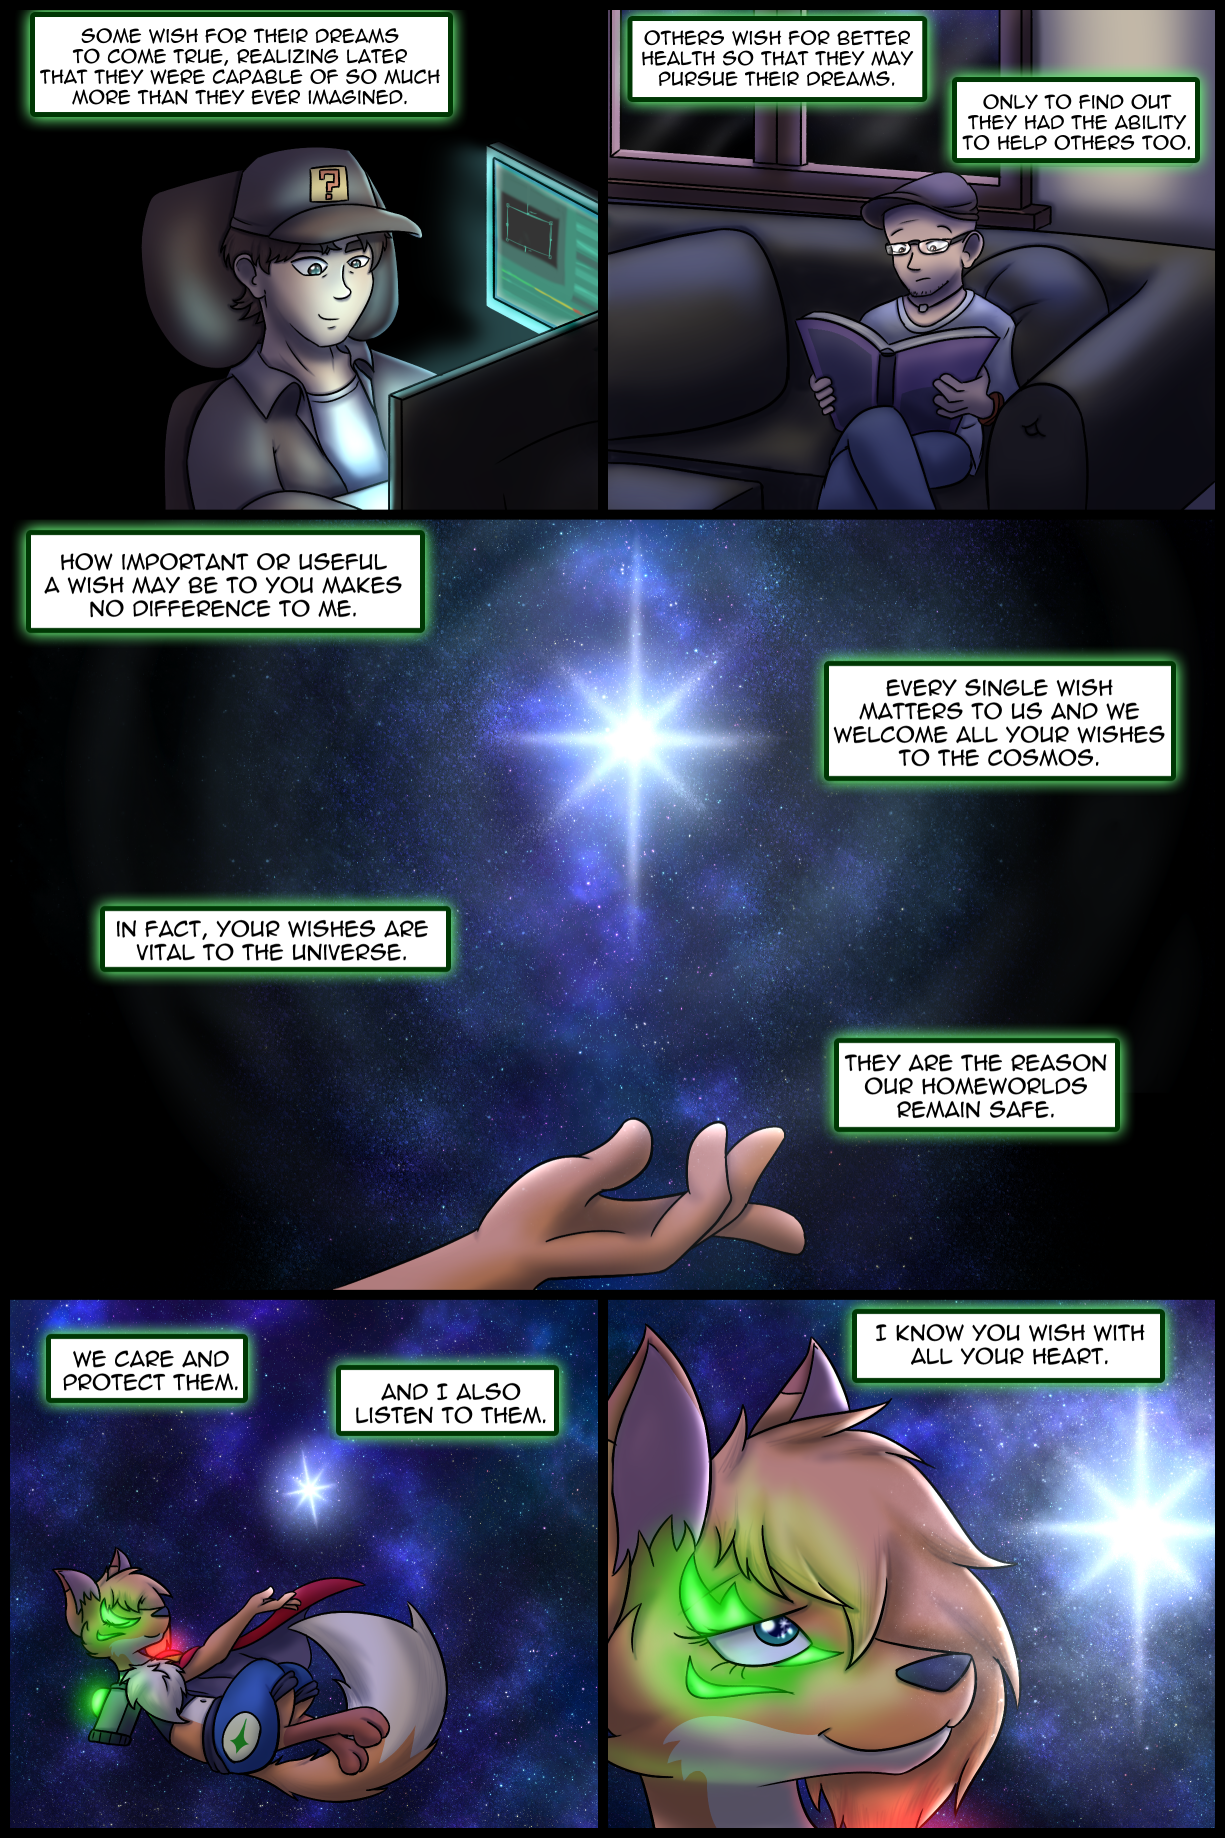 Ch0 Remastered Page 3-4 – The Value of Wishes – Nurturing Wishes